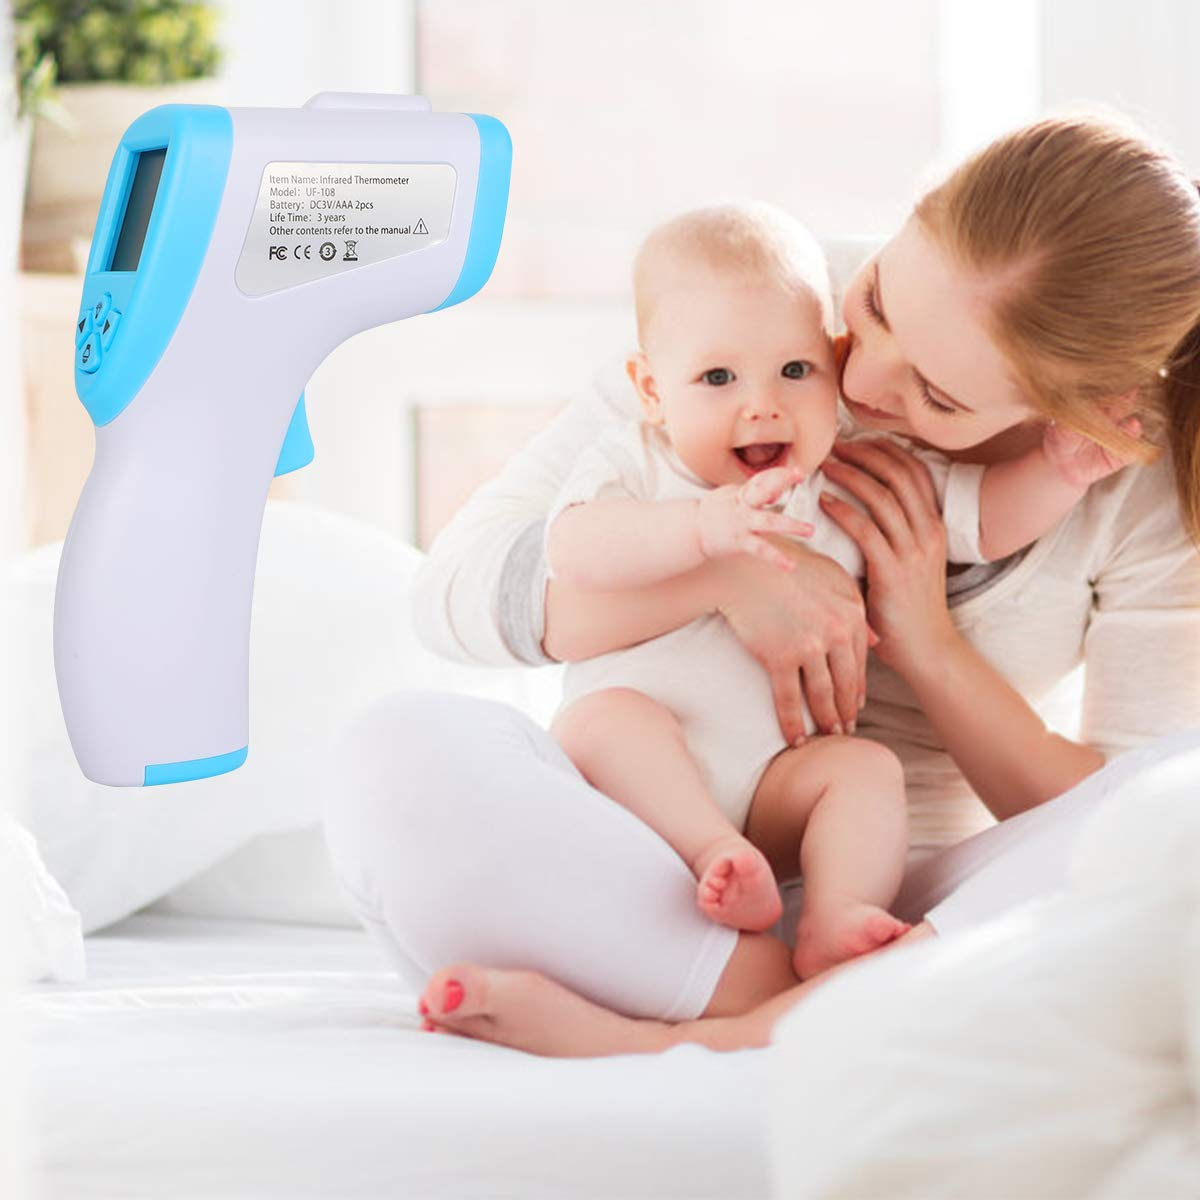 ˚F Adjustable No-Touch Thermometer Infrared Thermometer Digital Thermometer Forehead Professional Precision Digital Medical Infrared Thermometer for Baby and Adult Forehead Thermometer ˚C